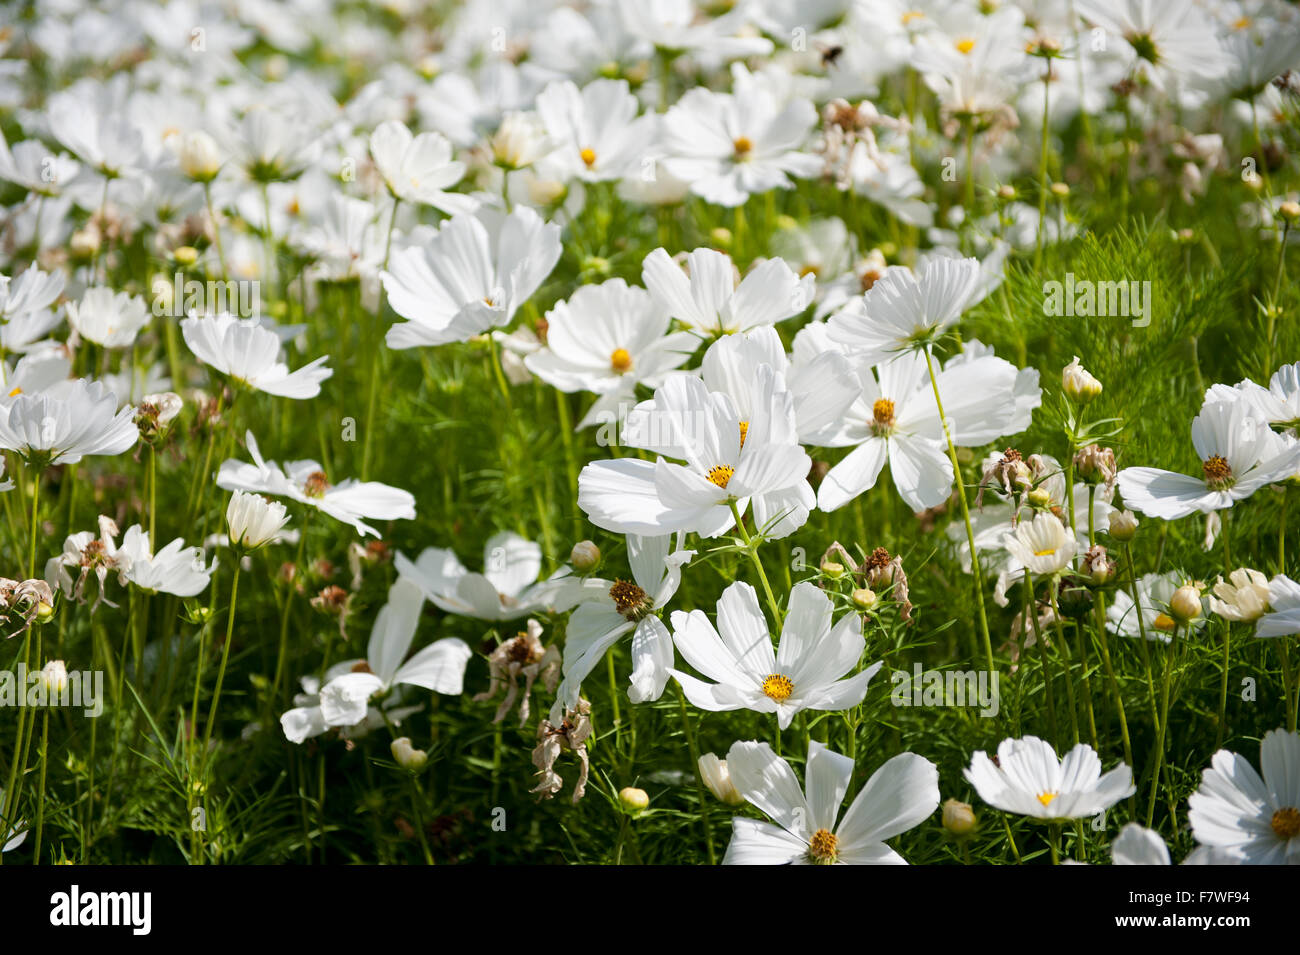 White cosmos plants blooming in july cosmos bipinnatus flowers white cosmos plants blooming in july cosmos bipinnatus flowers called garden cosmos or mexican aster polish name warszawianka mightylinksfo